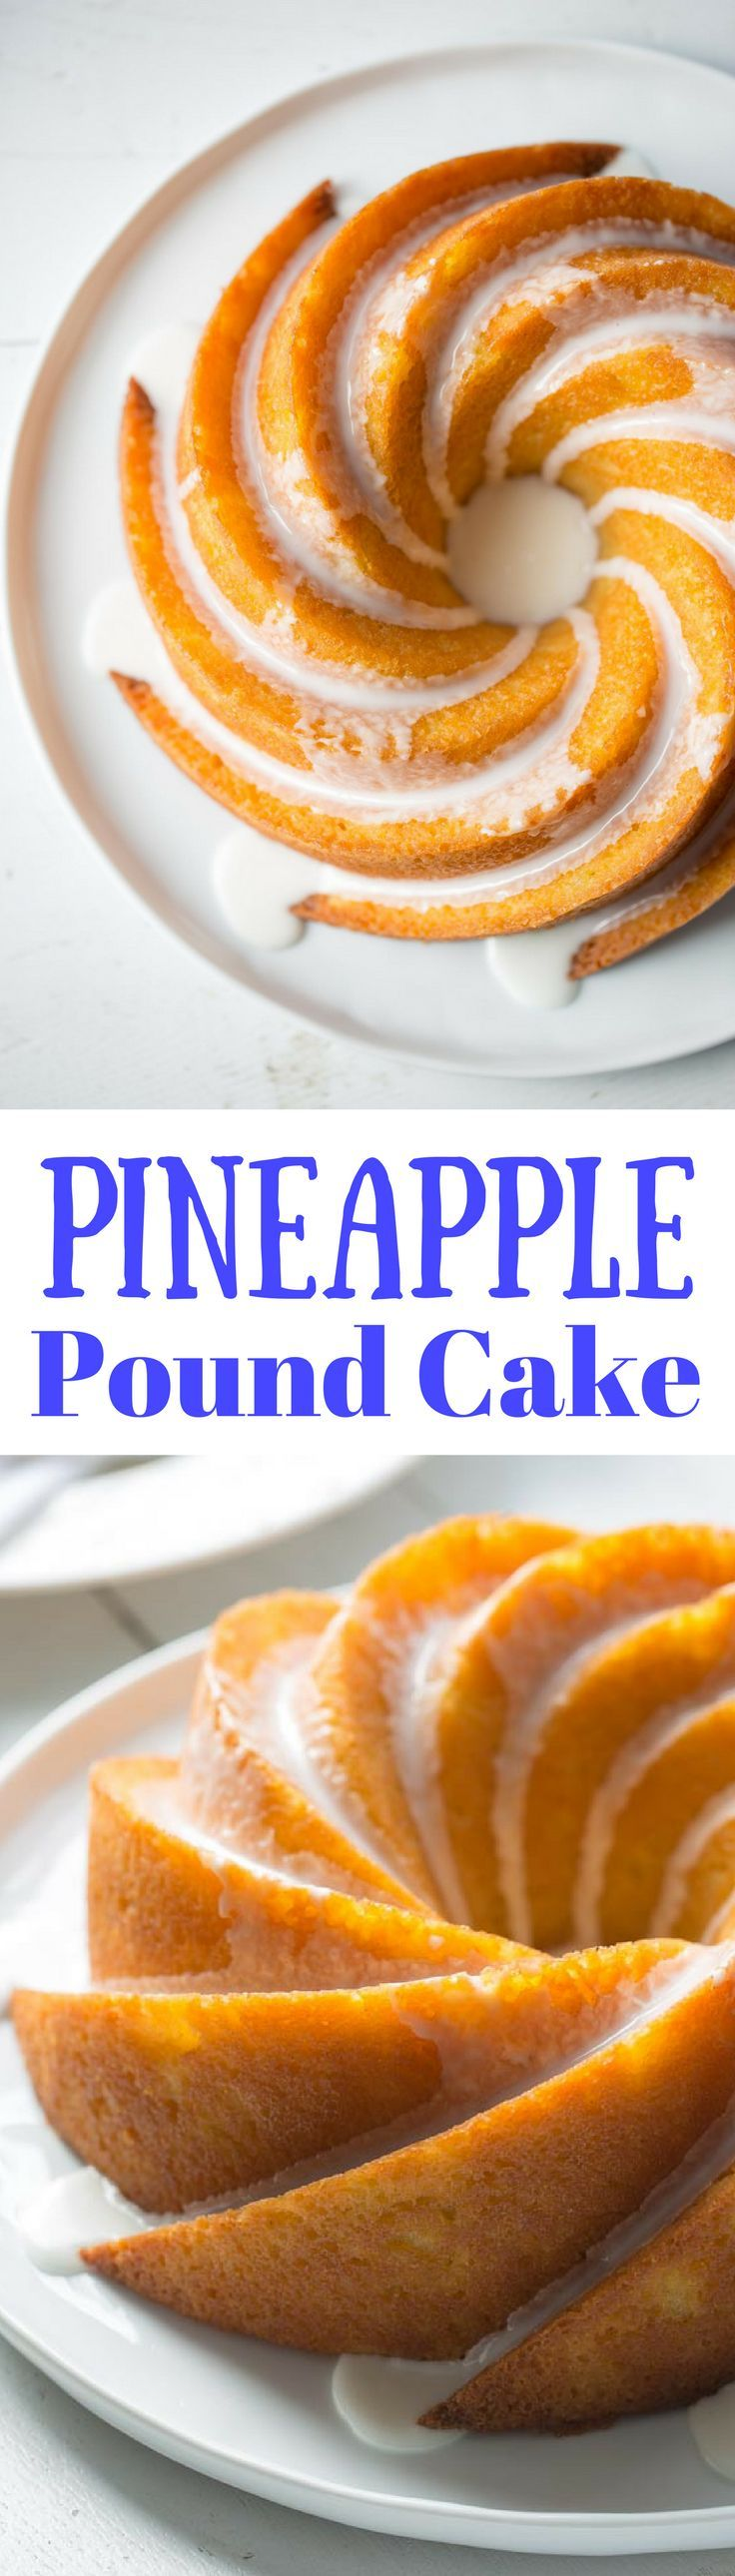 Cake With Icing Baked Inside : 17 Best ideas about House Cake on Pinterest Housewarming ...